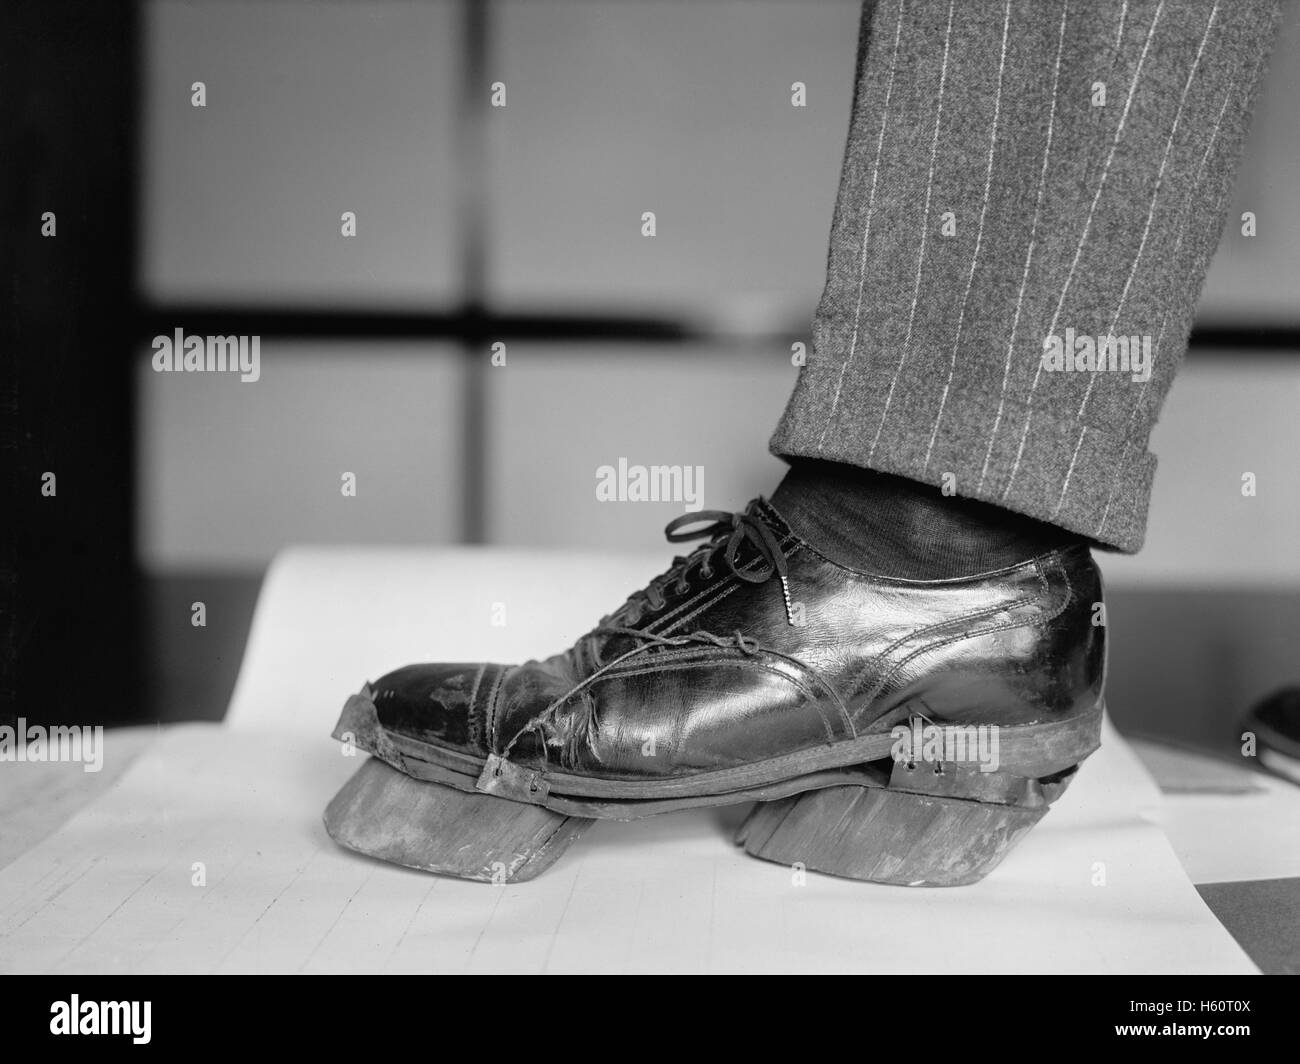 Policeman Trying on Cow Shoe used by Moonshiners during Prohibition, Washington DC, USA, National Photo Company, - Stock Image